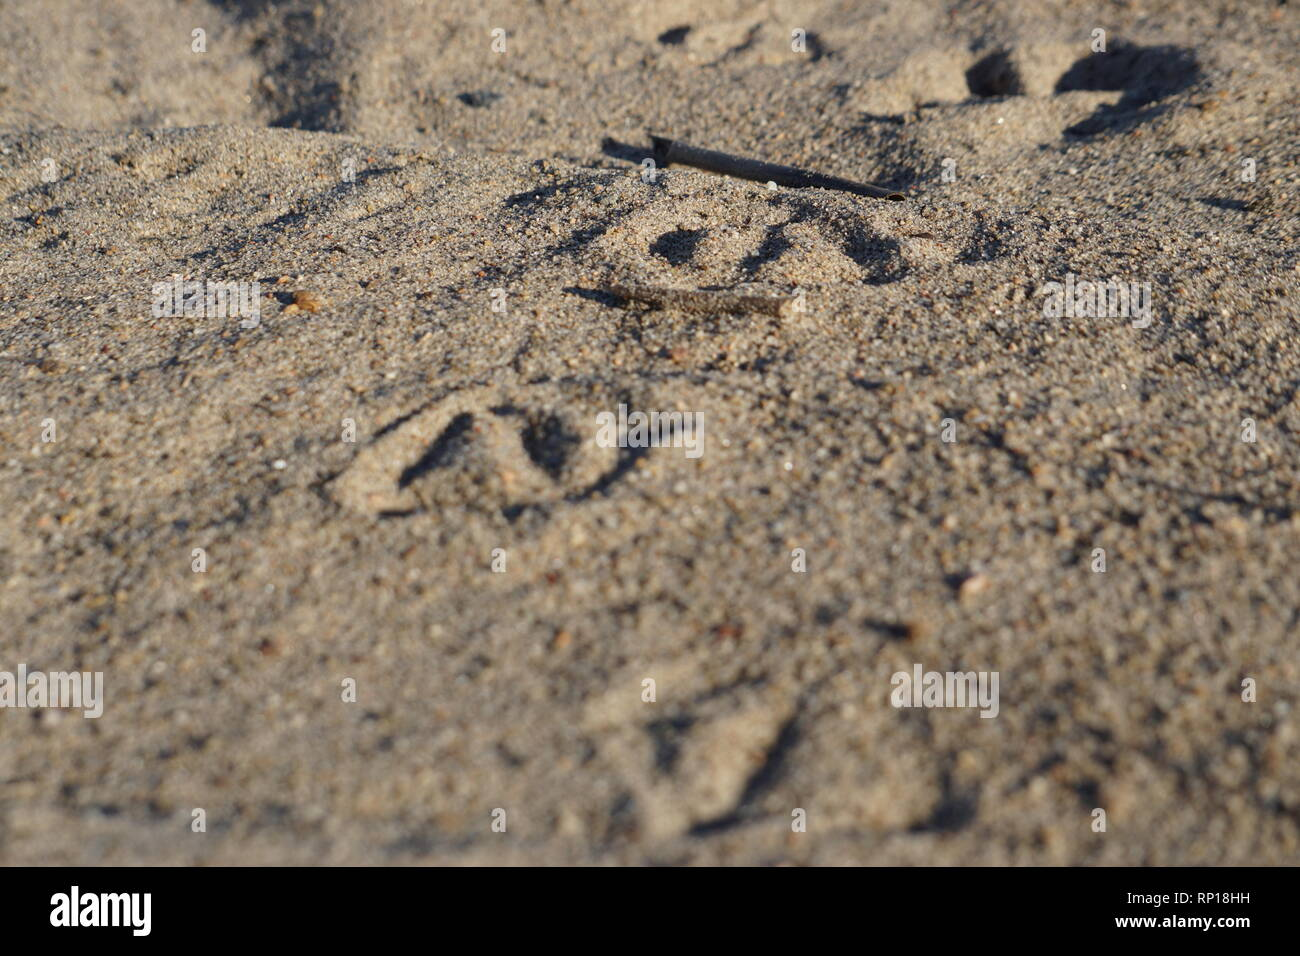 Duck tracks in the sand - Stock Image